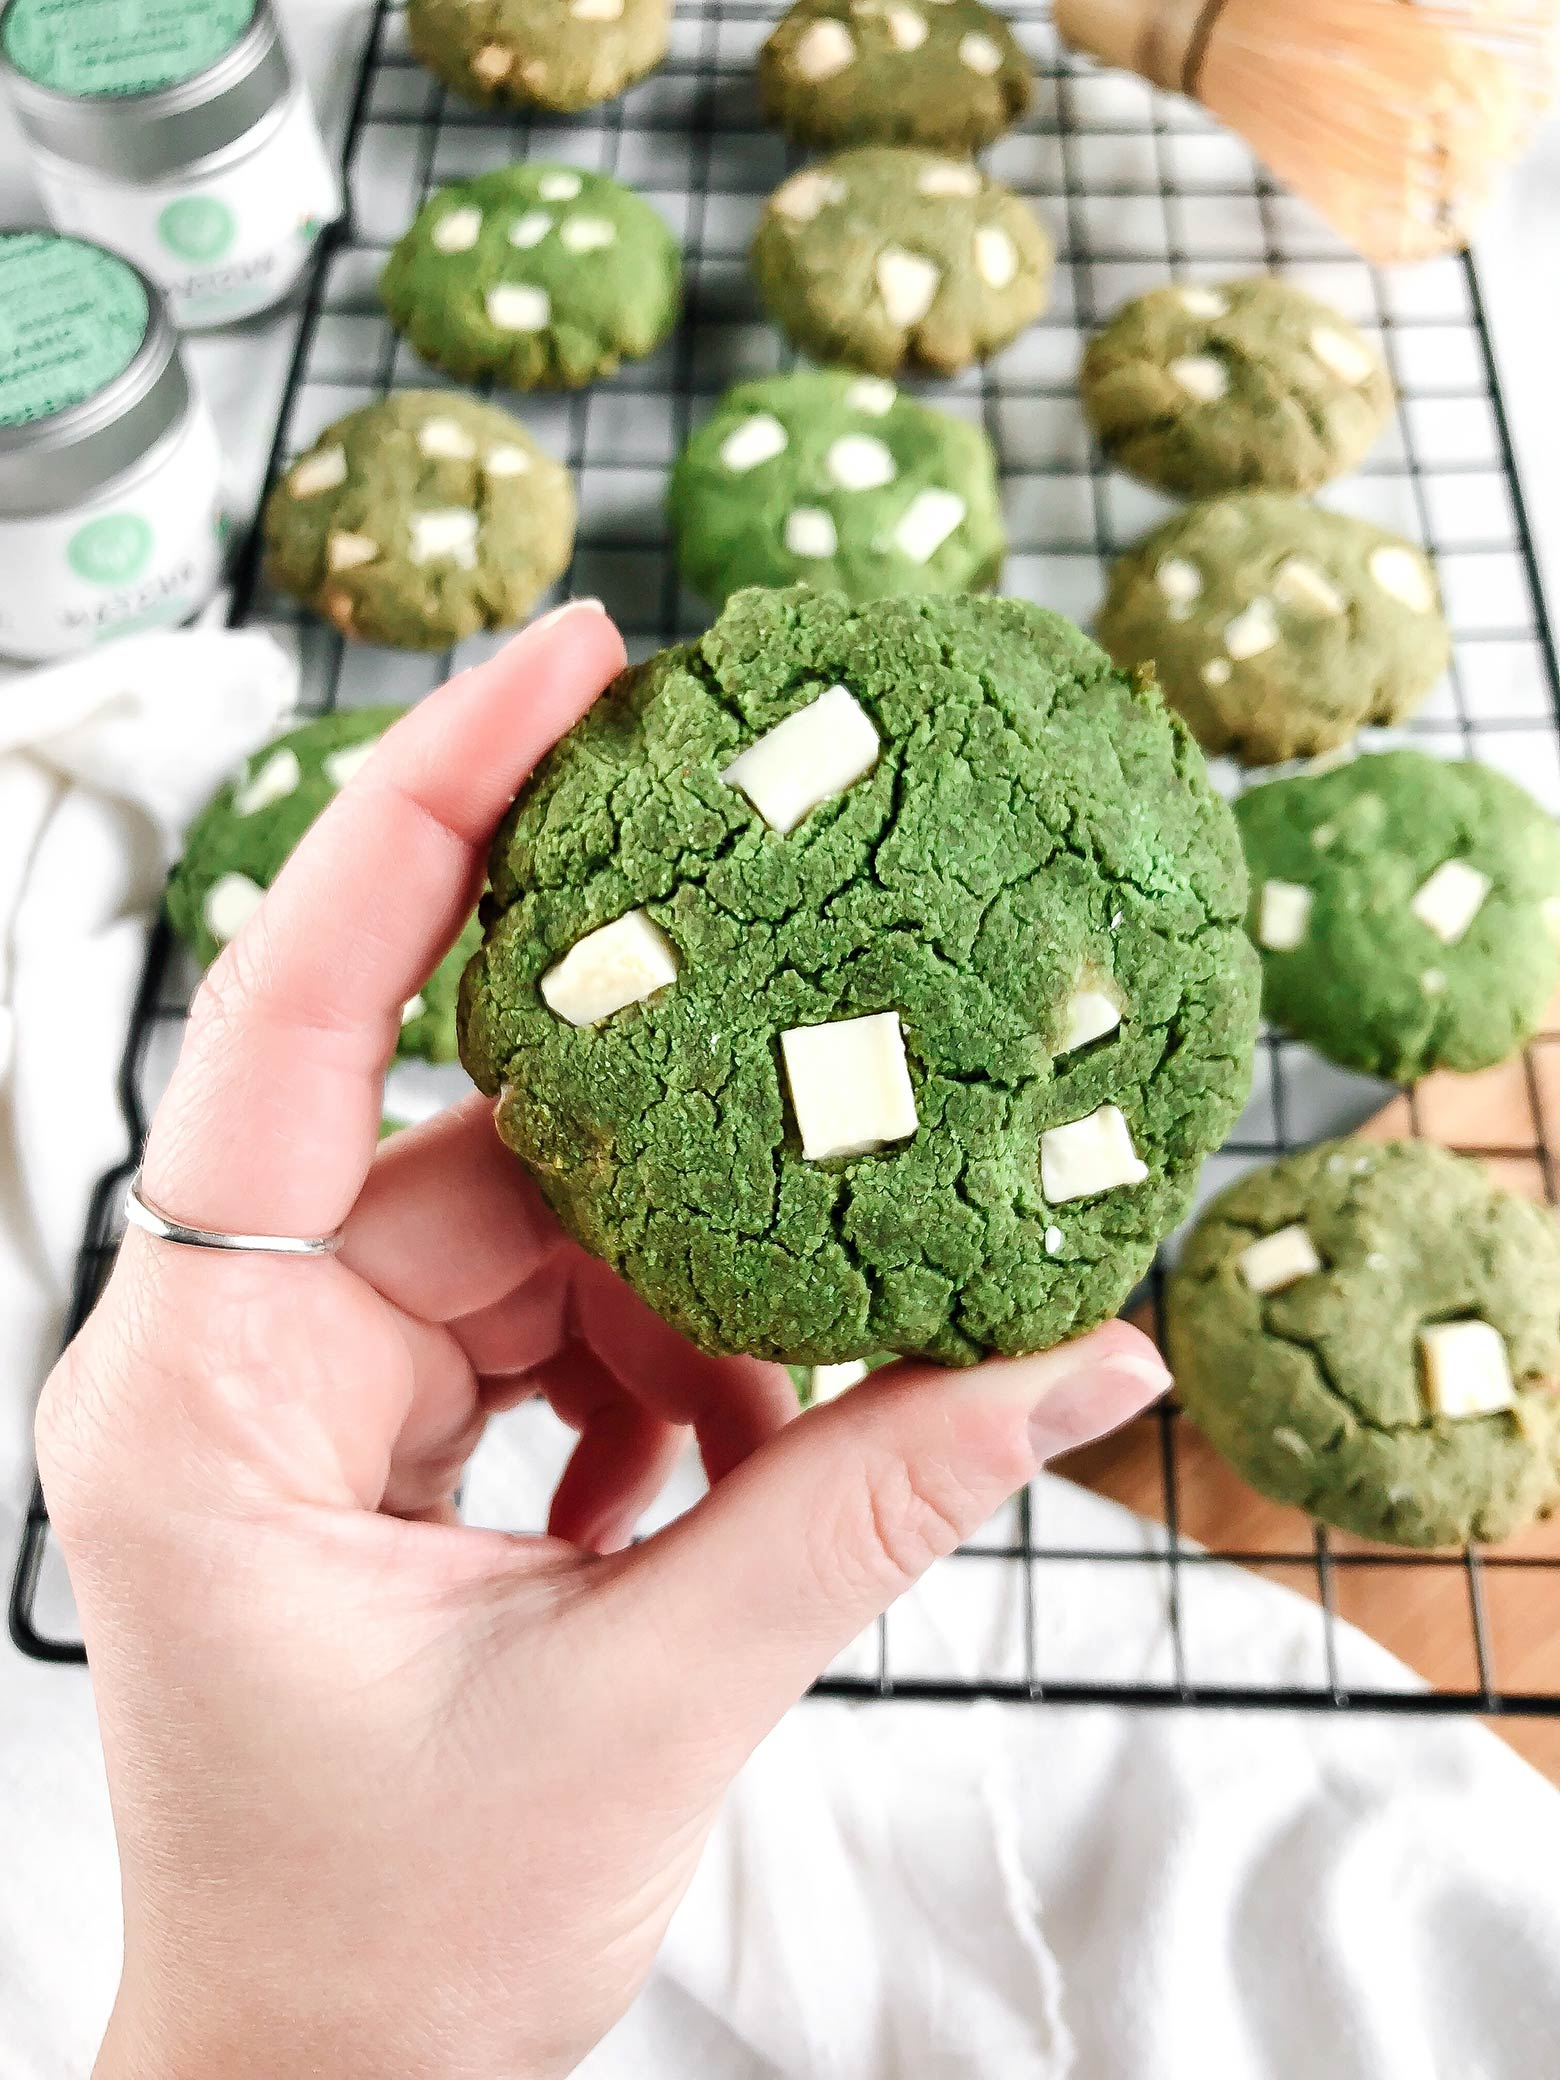 Soar Organics Matcha White Chocolate Chunk Cookies